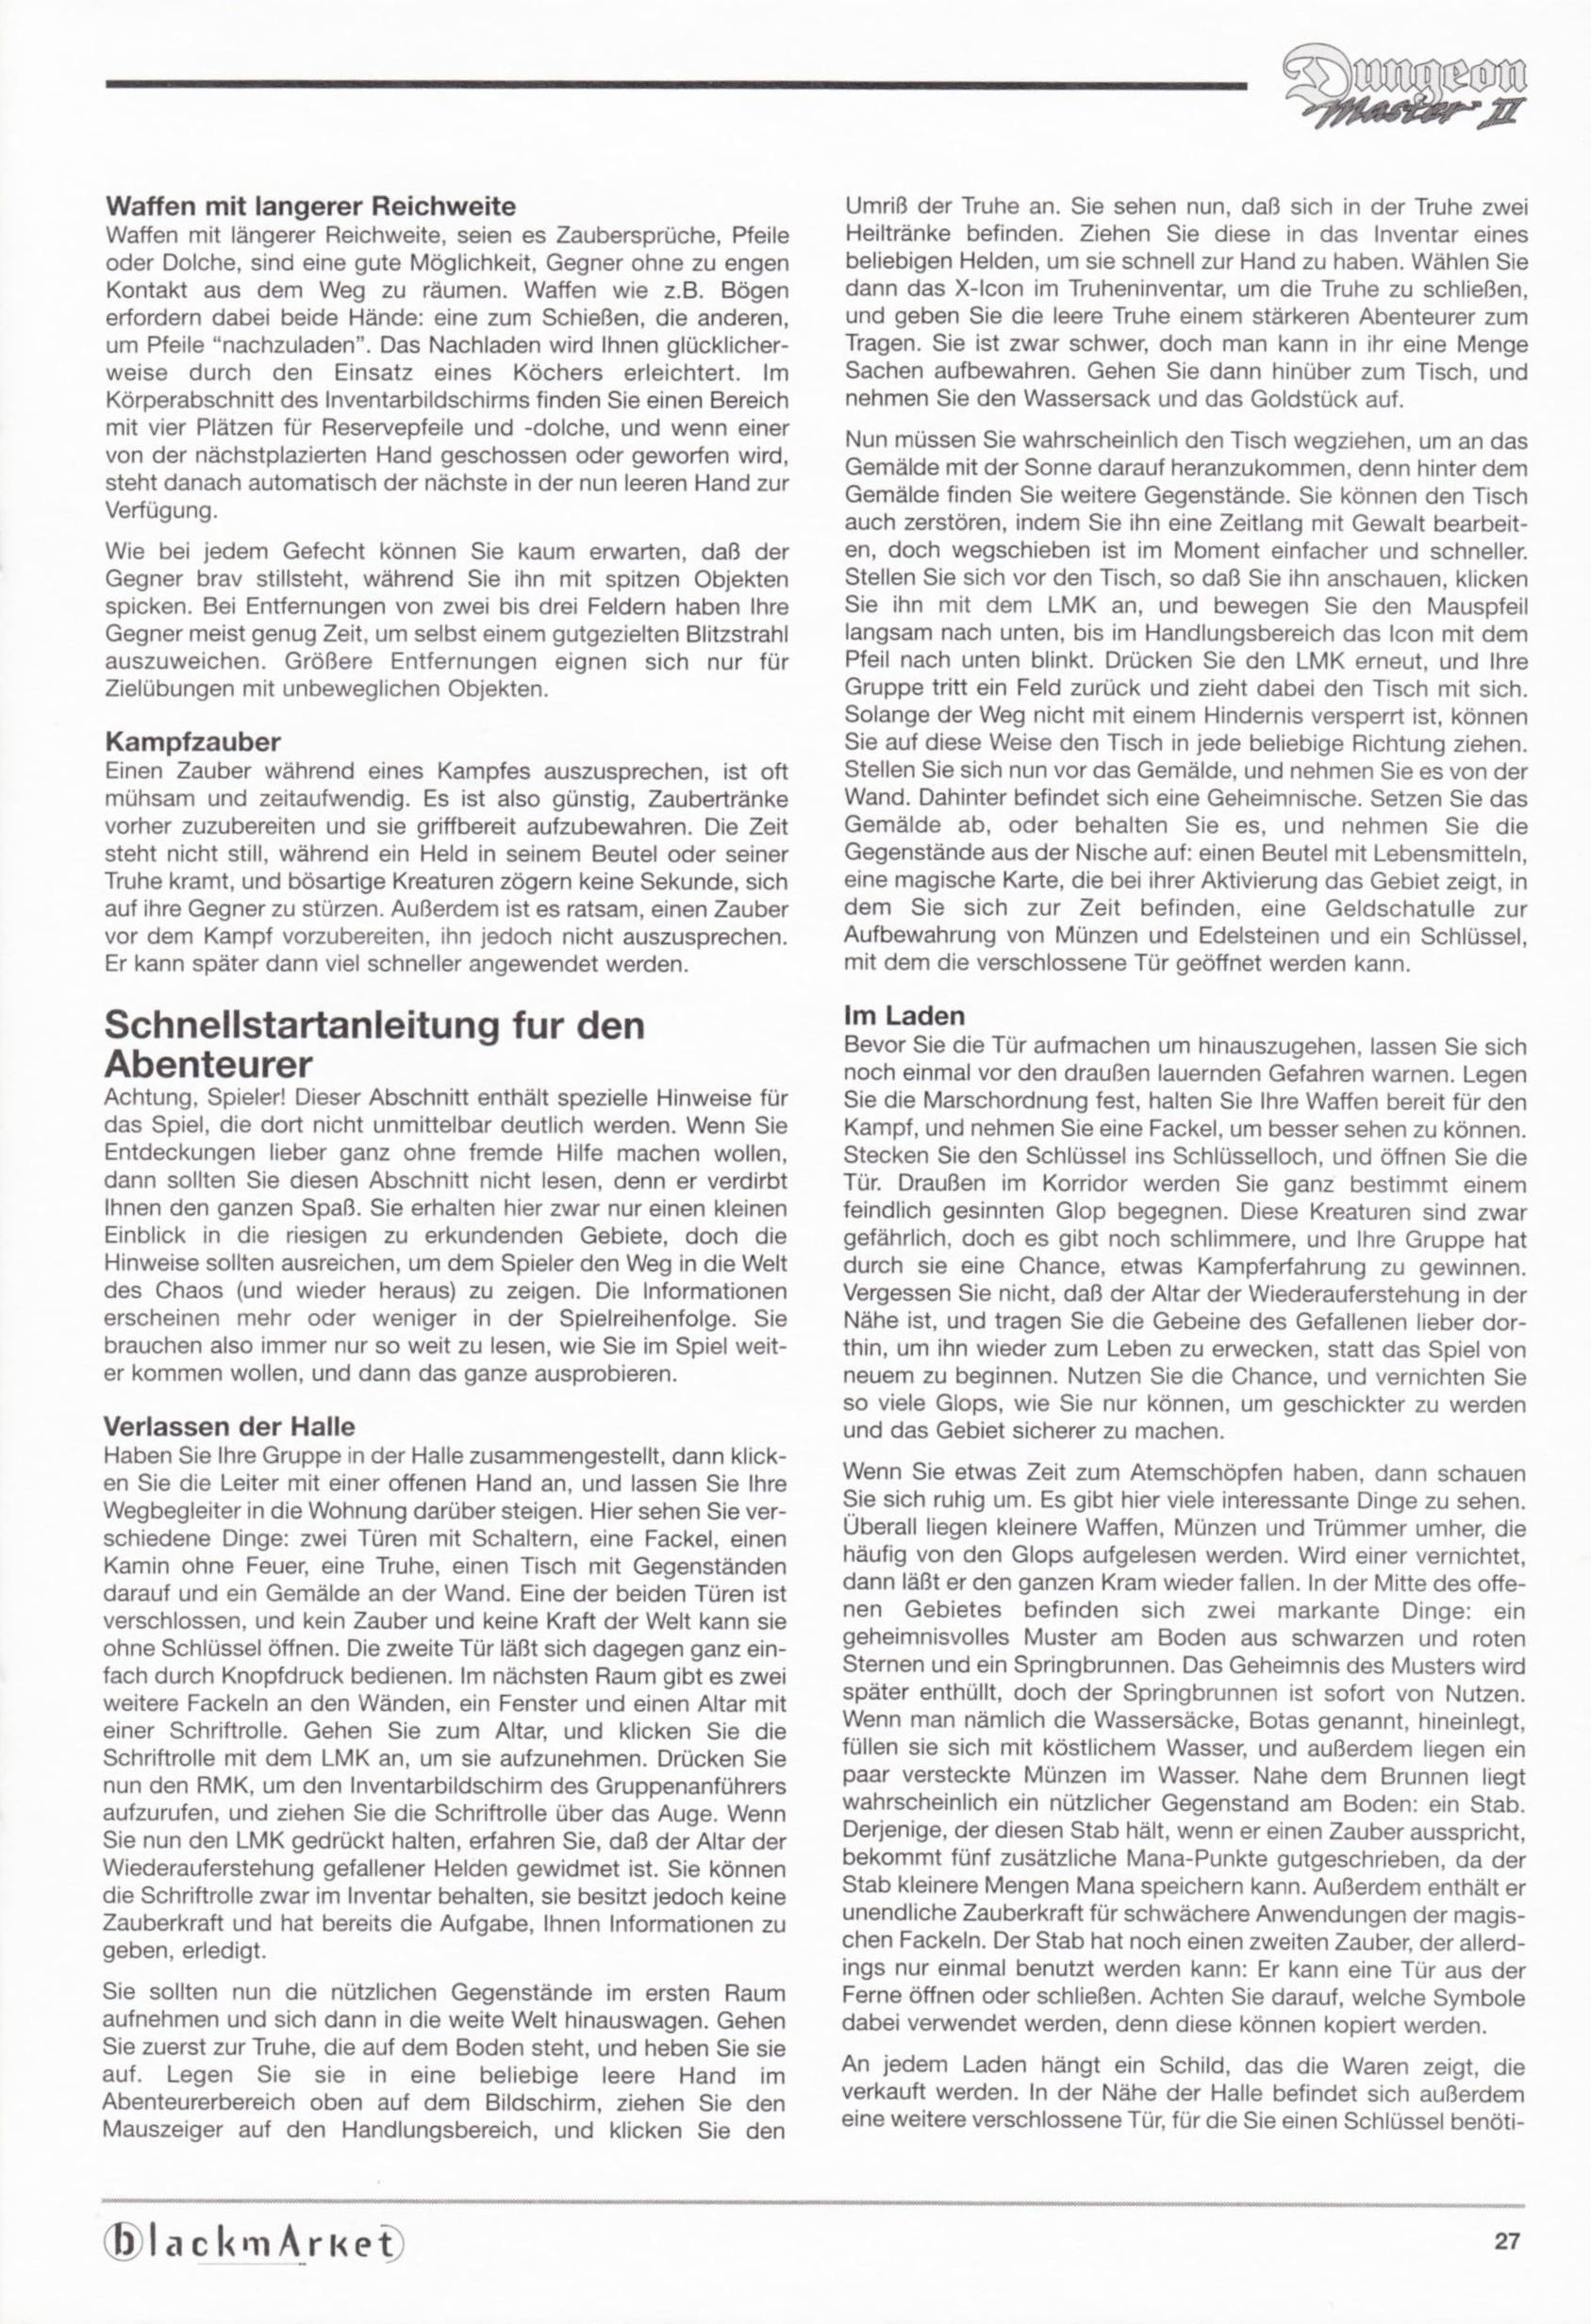 Game - Dungeon Master II - DE - PC - Blackmarket With Manual - Manual - Page 029 - Scan